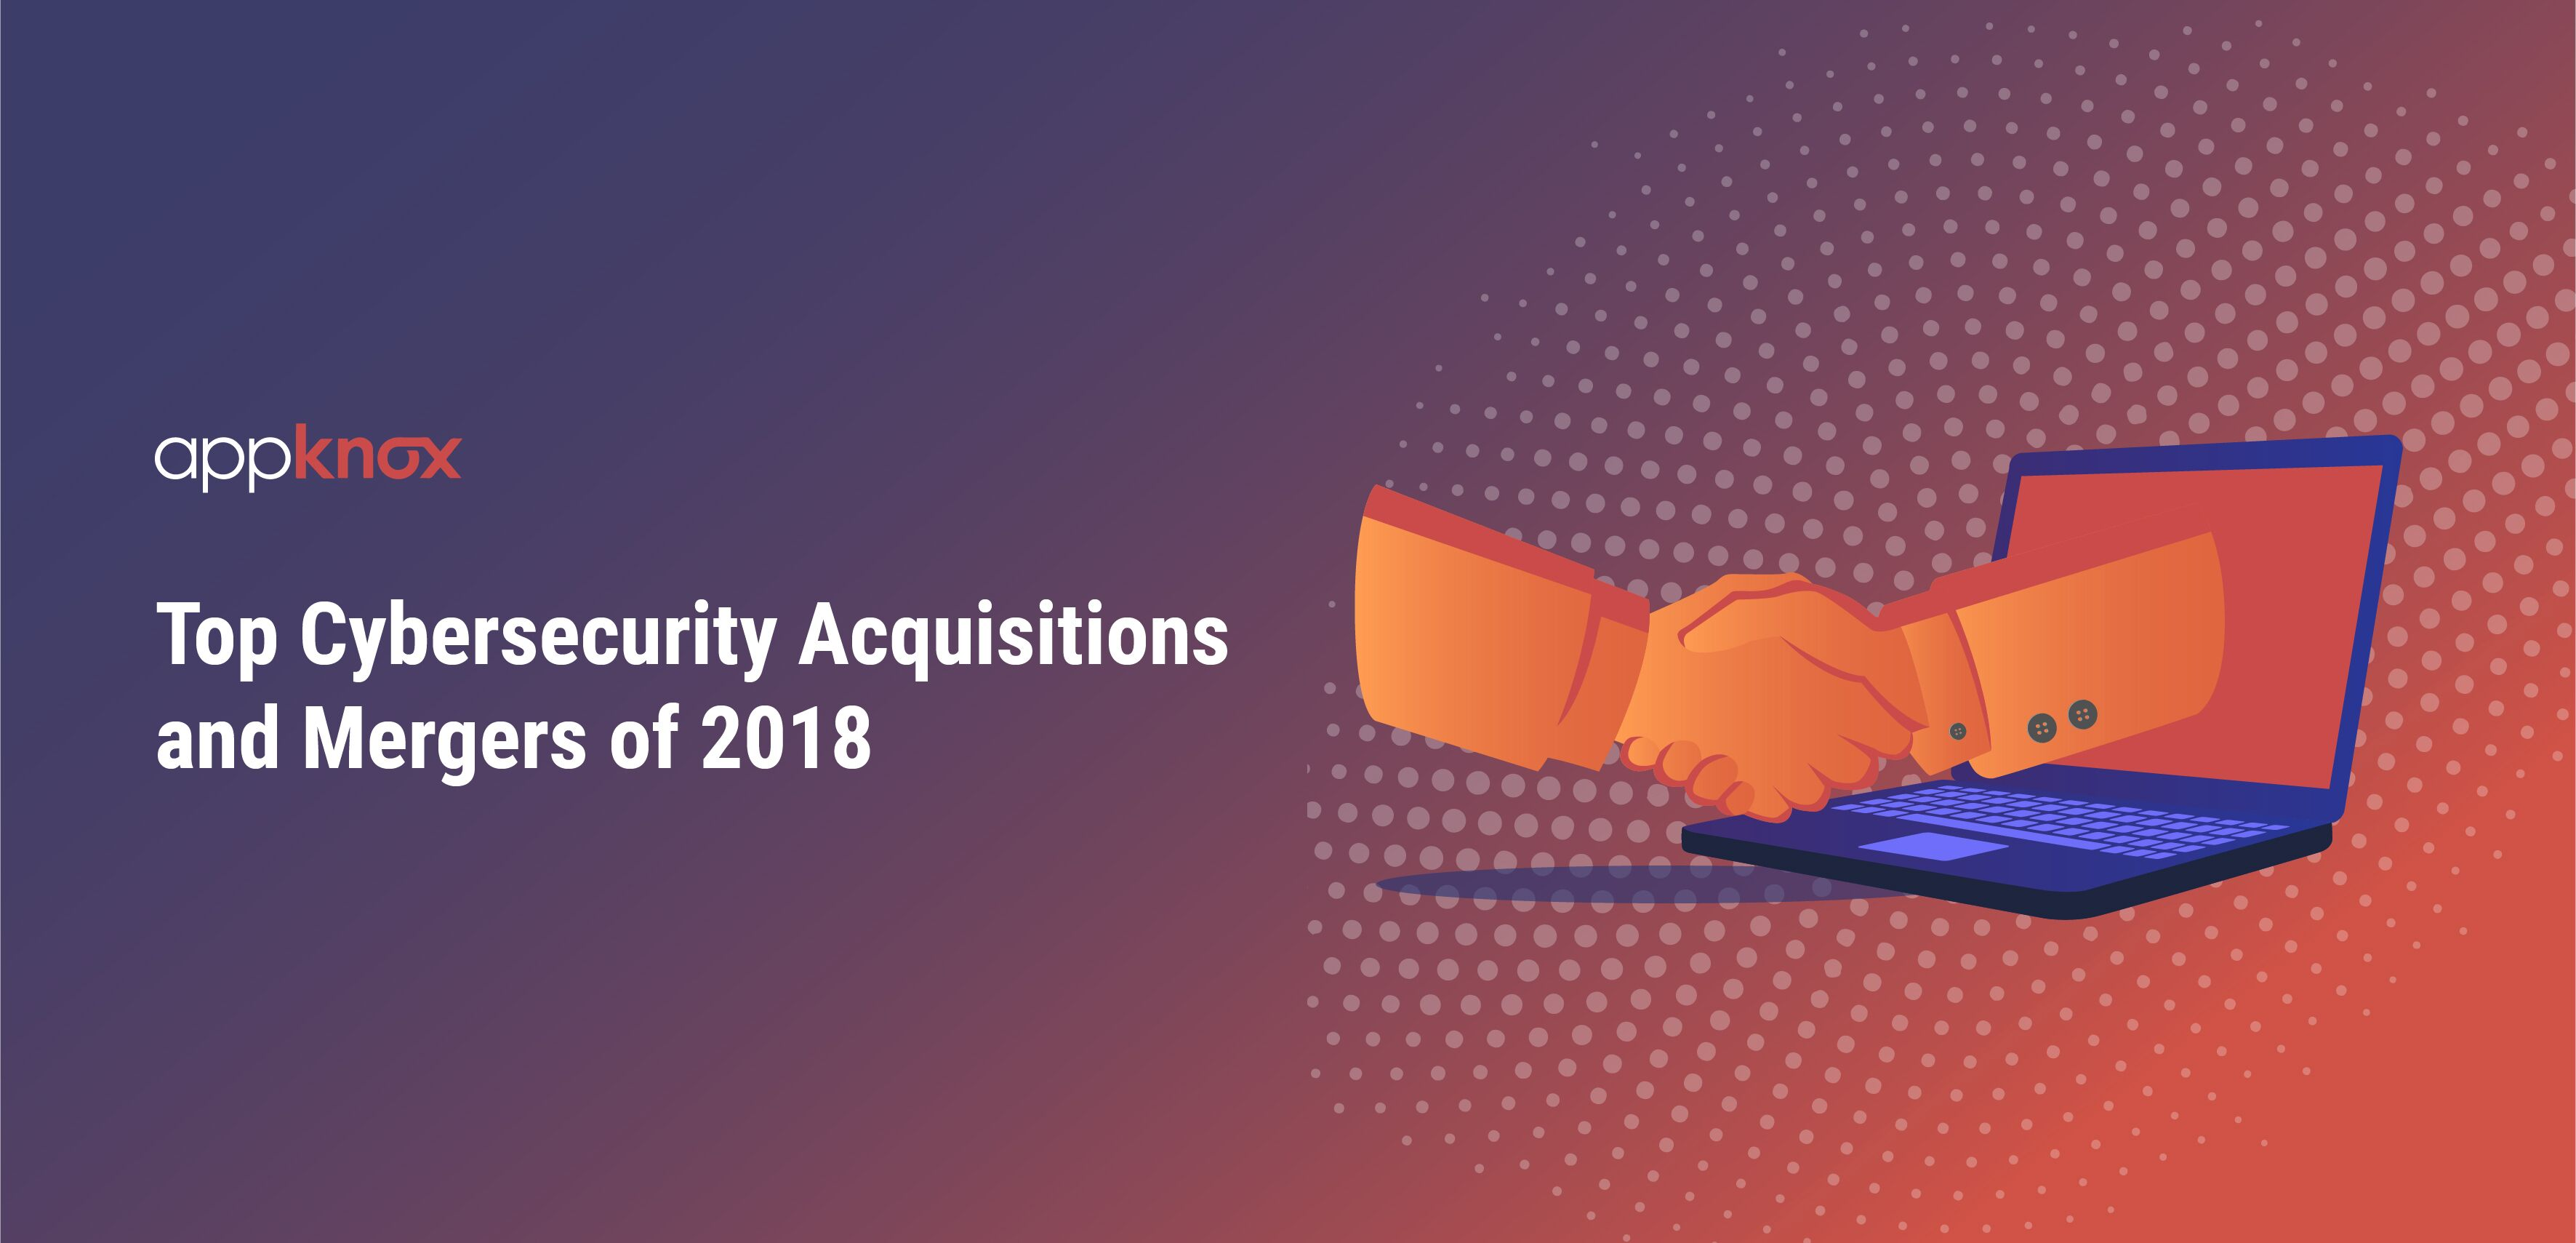 Top Cybersecurity Acquisitions and Mergers of 2018